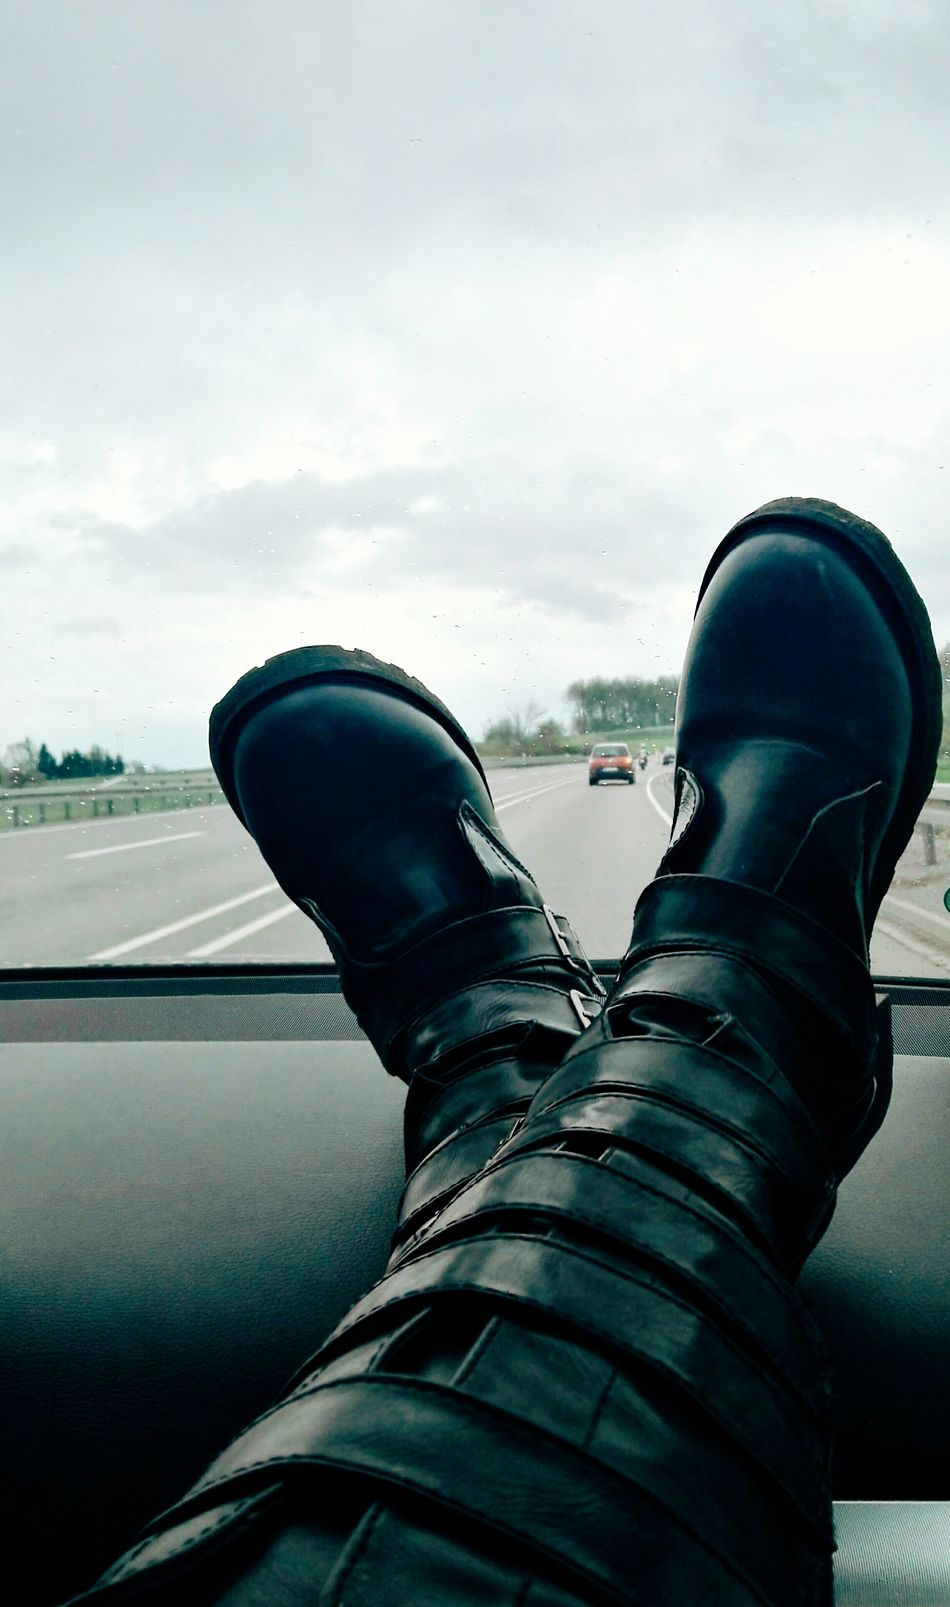 On the way to Tübingen Germany Human Body Part Human Leg Personal Perspective Cloud - Sky Low Section One Person Shoe Close-up Only Women One Woman Only One Young Woman Only Young Adult In Car Roud Driving To Work Driving Home Car Perspective Sitting In The Car